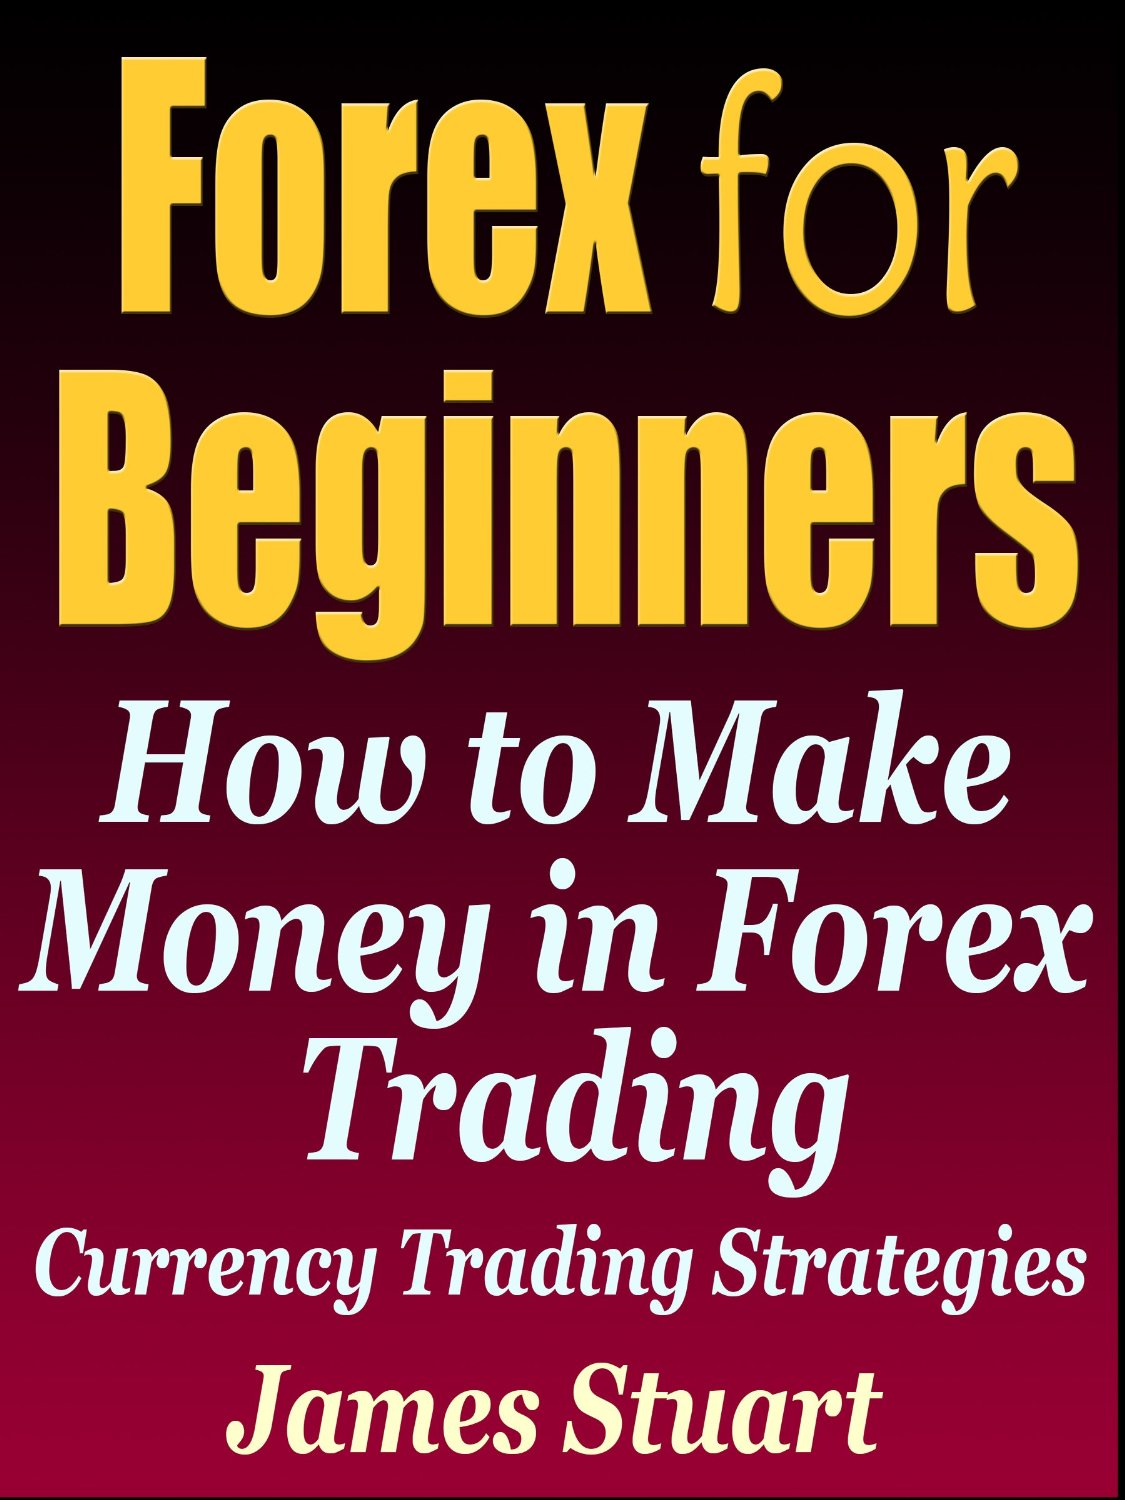 How to earn money forex